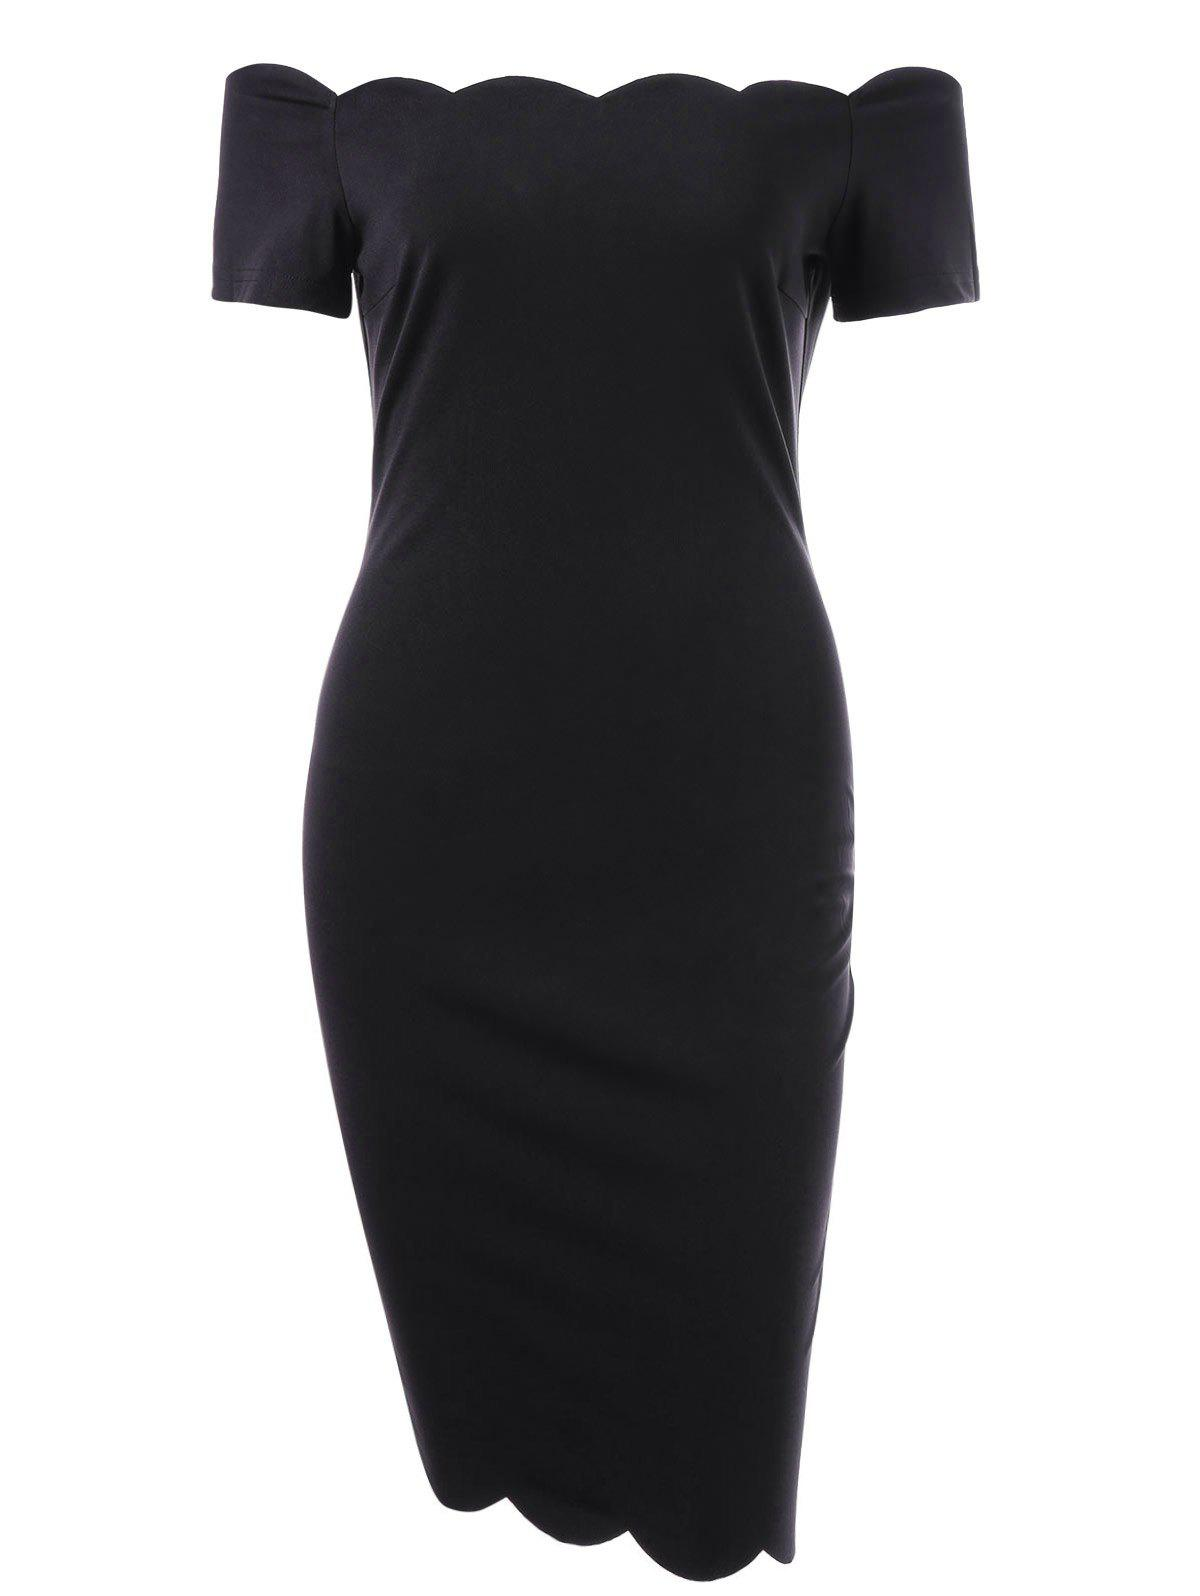 Off The Shoulder Scalloped Sheath Dress - BLACK 2XL